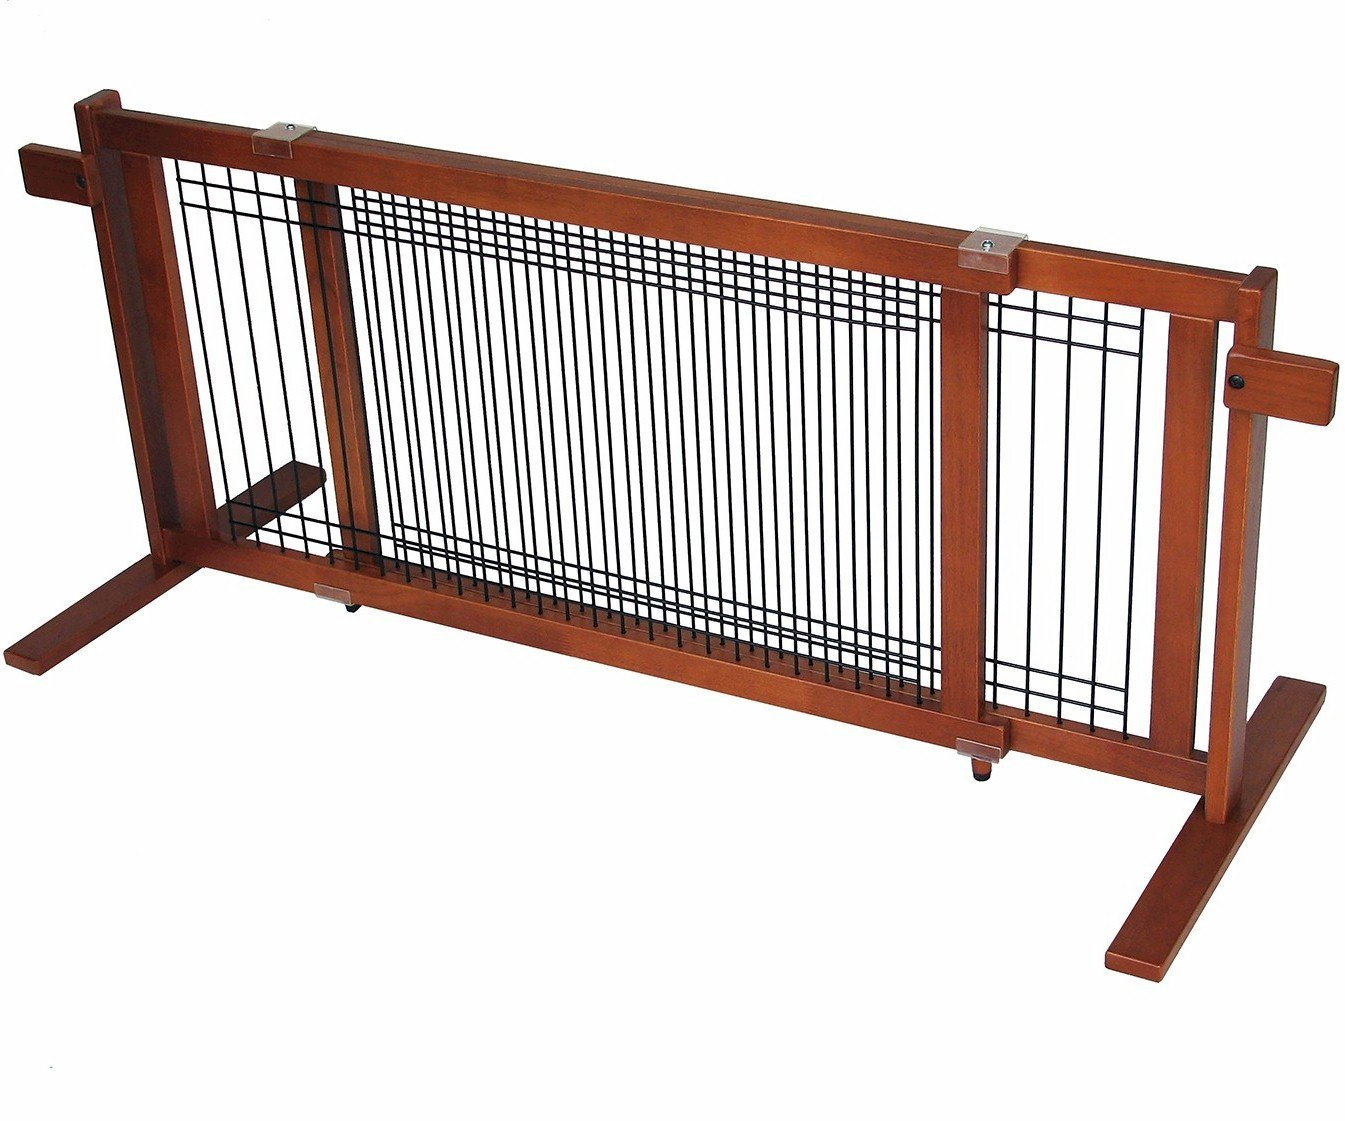 Crown Pet Products 21-Inch High Extra Wide Freestanding Wooden Pet Gate, Large Span Fits Openings 40'' to 74.5'' Wide, Chestnut Finish